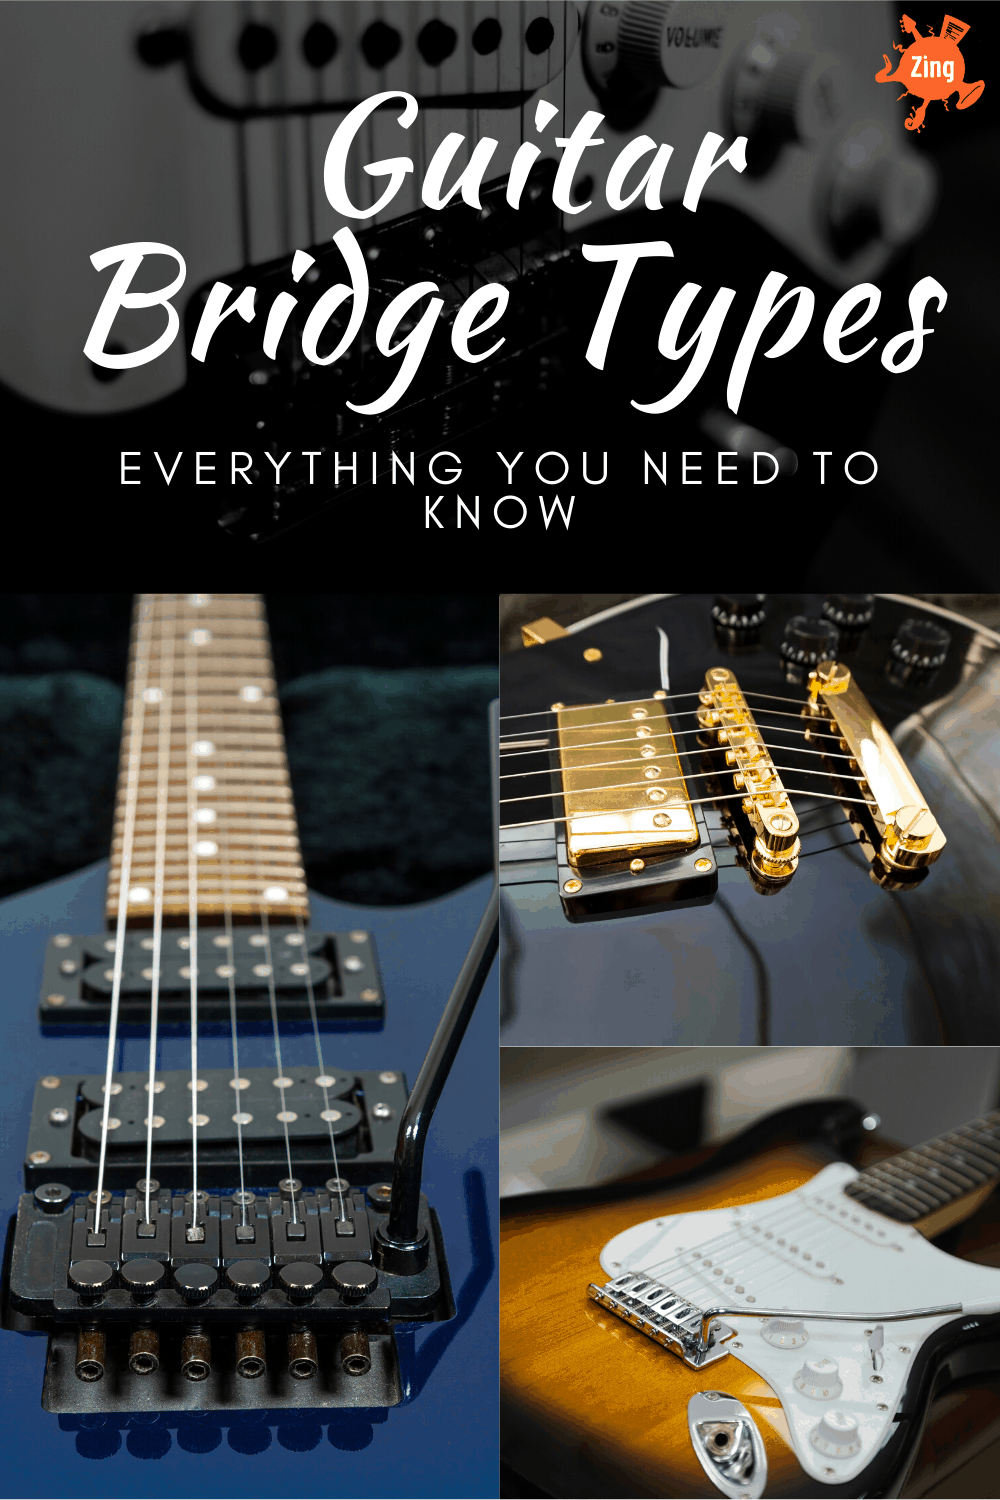 guitar bridge types - everything you need to know